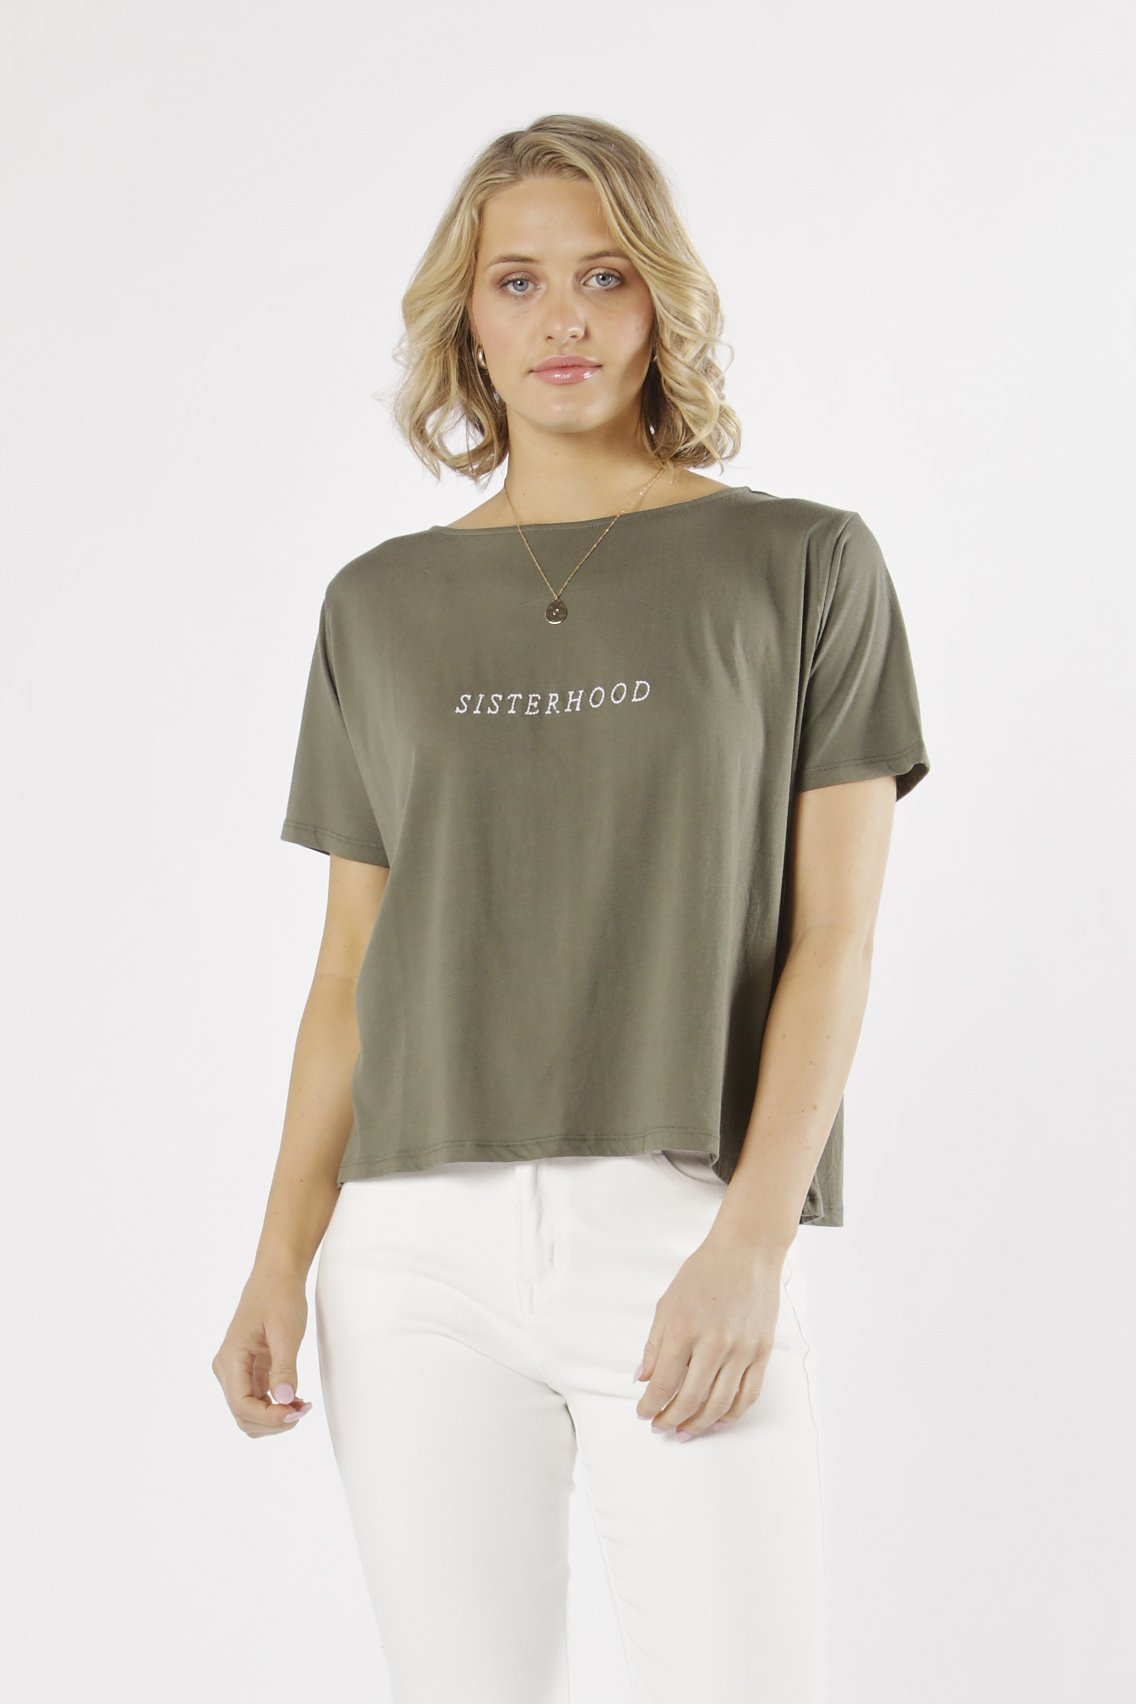 Fate + Becker Sisterhood Tee in Khaki - Hey Sara